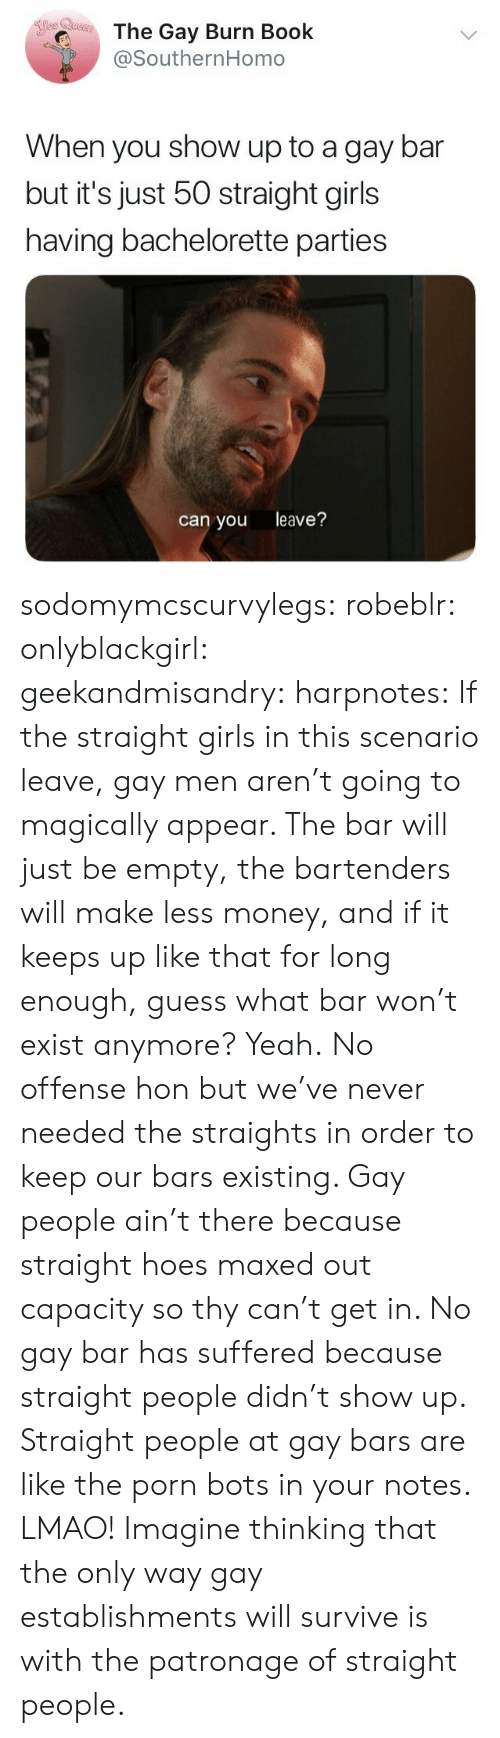 No Offense: The Gay Burn Book  @SouthernHomo  When you show up to a gay bar  but it's just 50 straight girls  having bachelorette parties  can you leave? sodomymcscurvylegs:  robeblr:  onlyblackgirl:   geekandmisandry:   harpnotes:  If the straight girls in this scenario leave, gay men aren't going to magically appear. The bar will just be empty, the bartenders will make less money, and if it keeps up like that for long enough, guess what bar won't exist anymore? Yeah.  No offense hon but we've never needed the straights in order to keep our bars existing.    Gay people ain't there because straight hoes maxed out capacity so thy can't get in. No gay bar has suffered because straight people didn't show up.    Straight people at gay bars are like the porn bots in your notes.   LMAO! Imagine thinking that the only way gay establishments will survive is with the patronage of straight people.